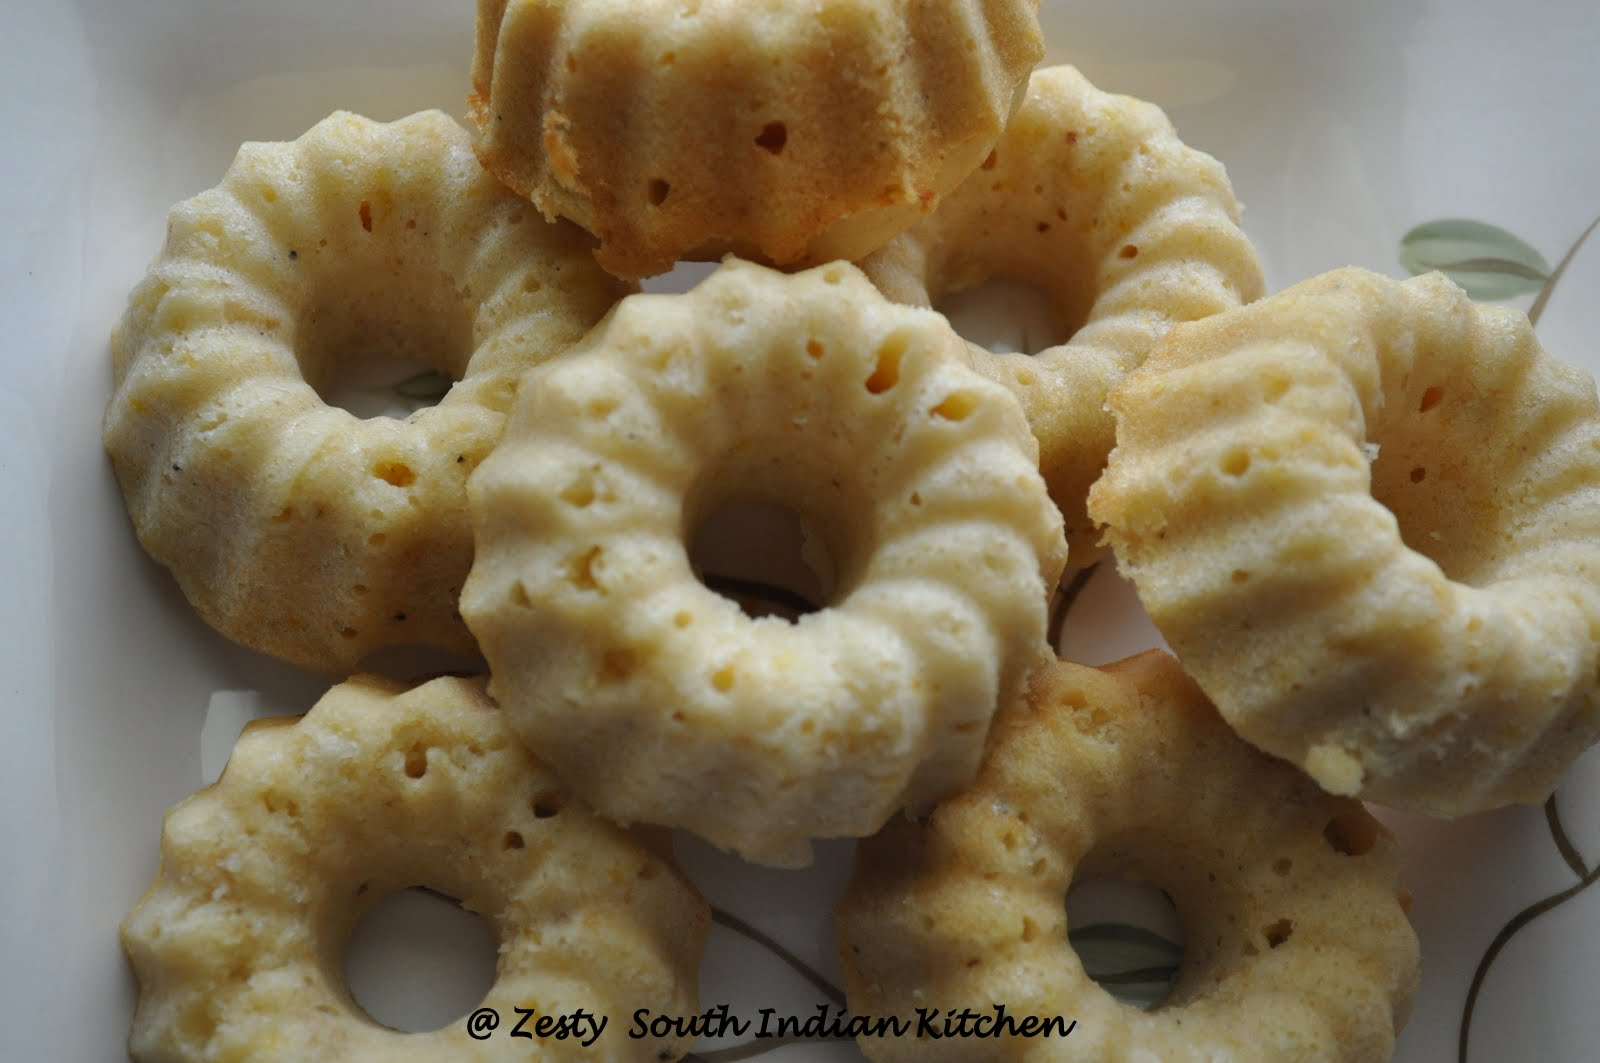 ... Cardamom Flavored Mava Cake: An Indian Milk Cake - Zesty South Indian